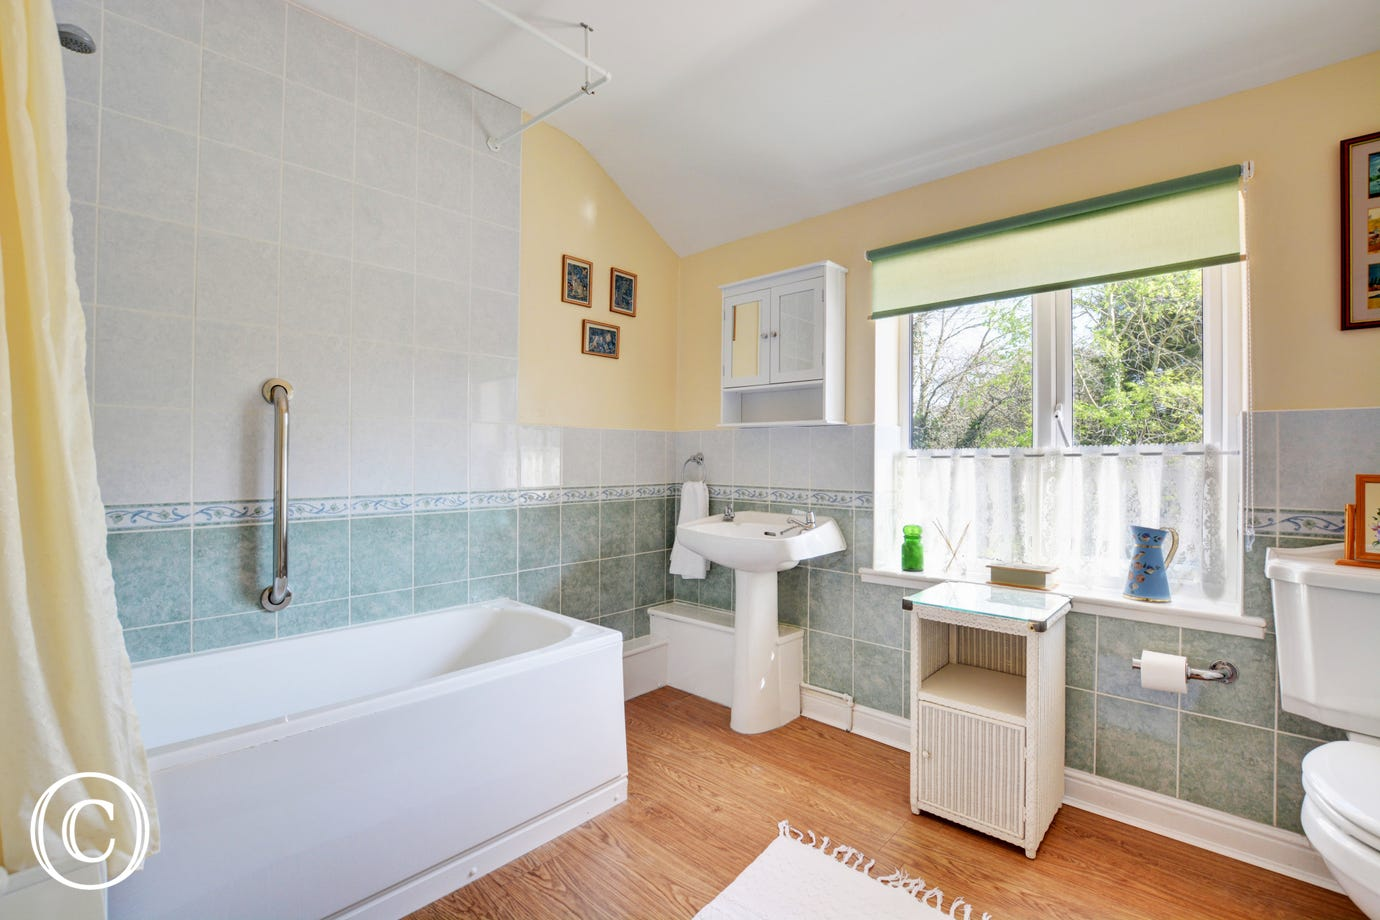 Part-tiled bathroom